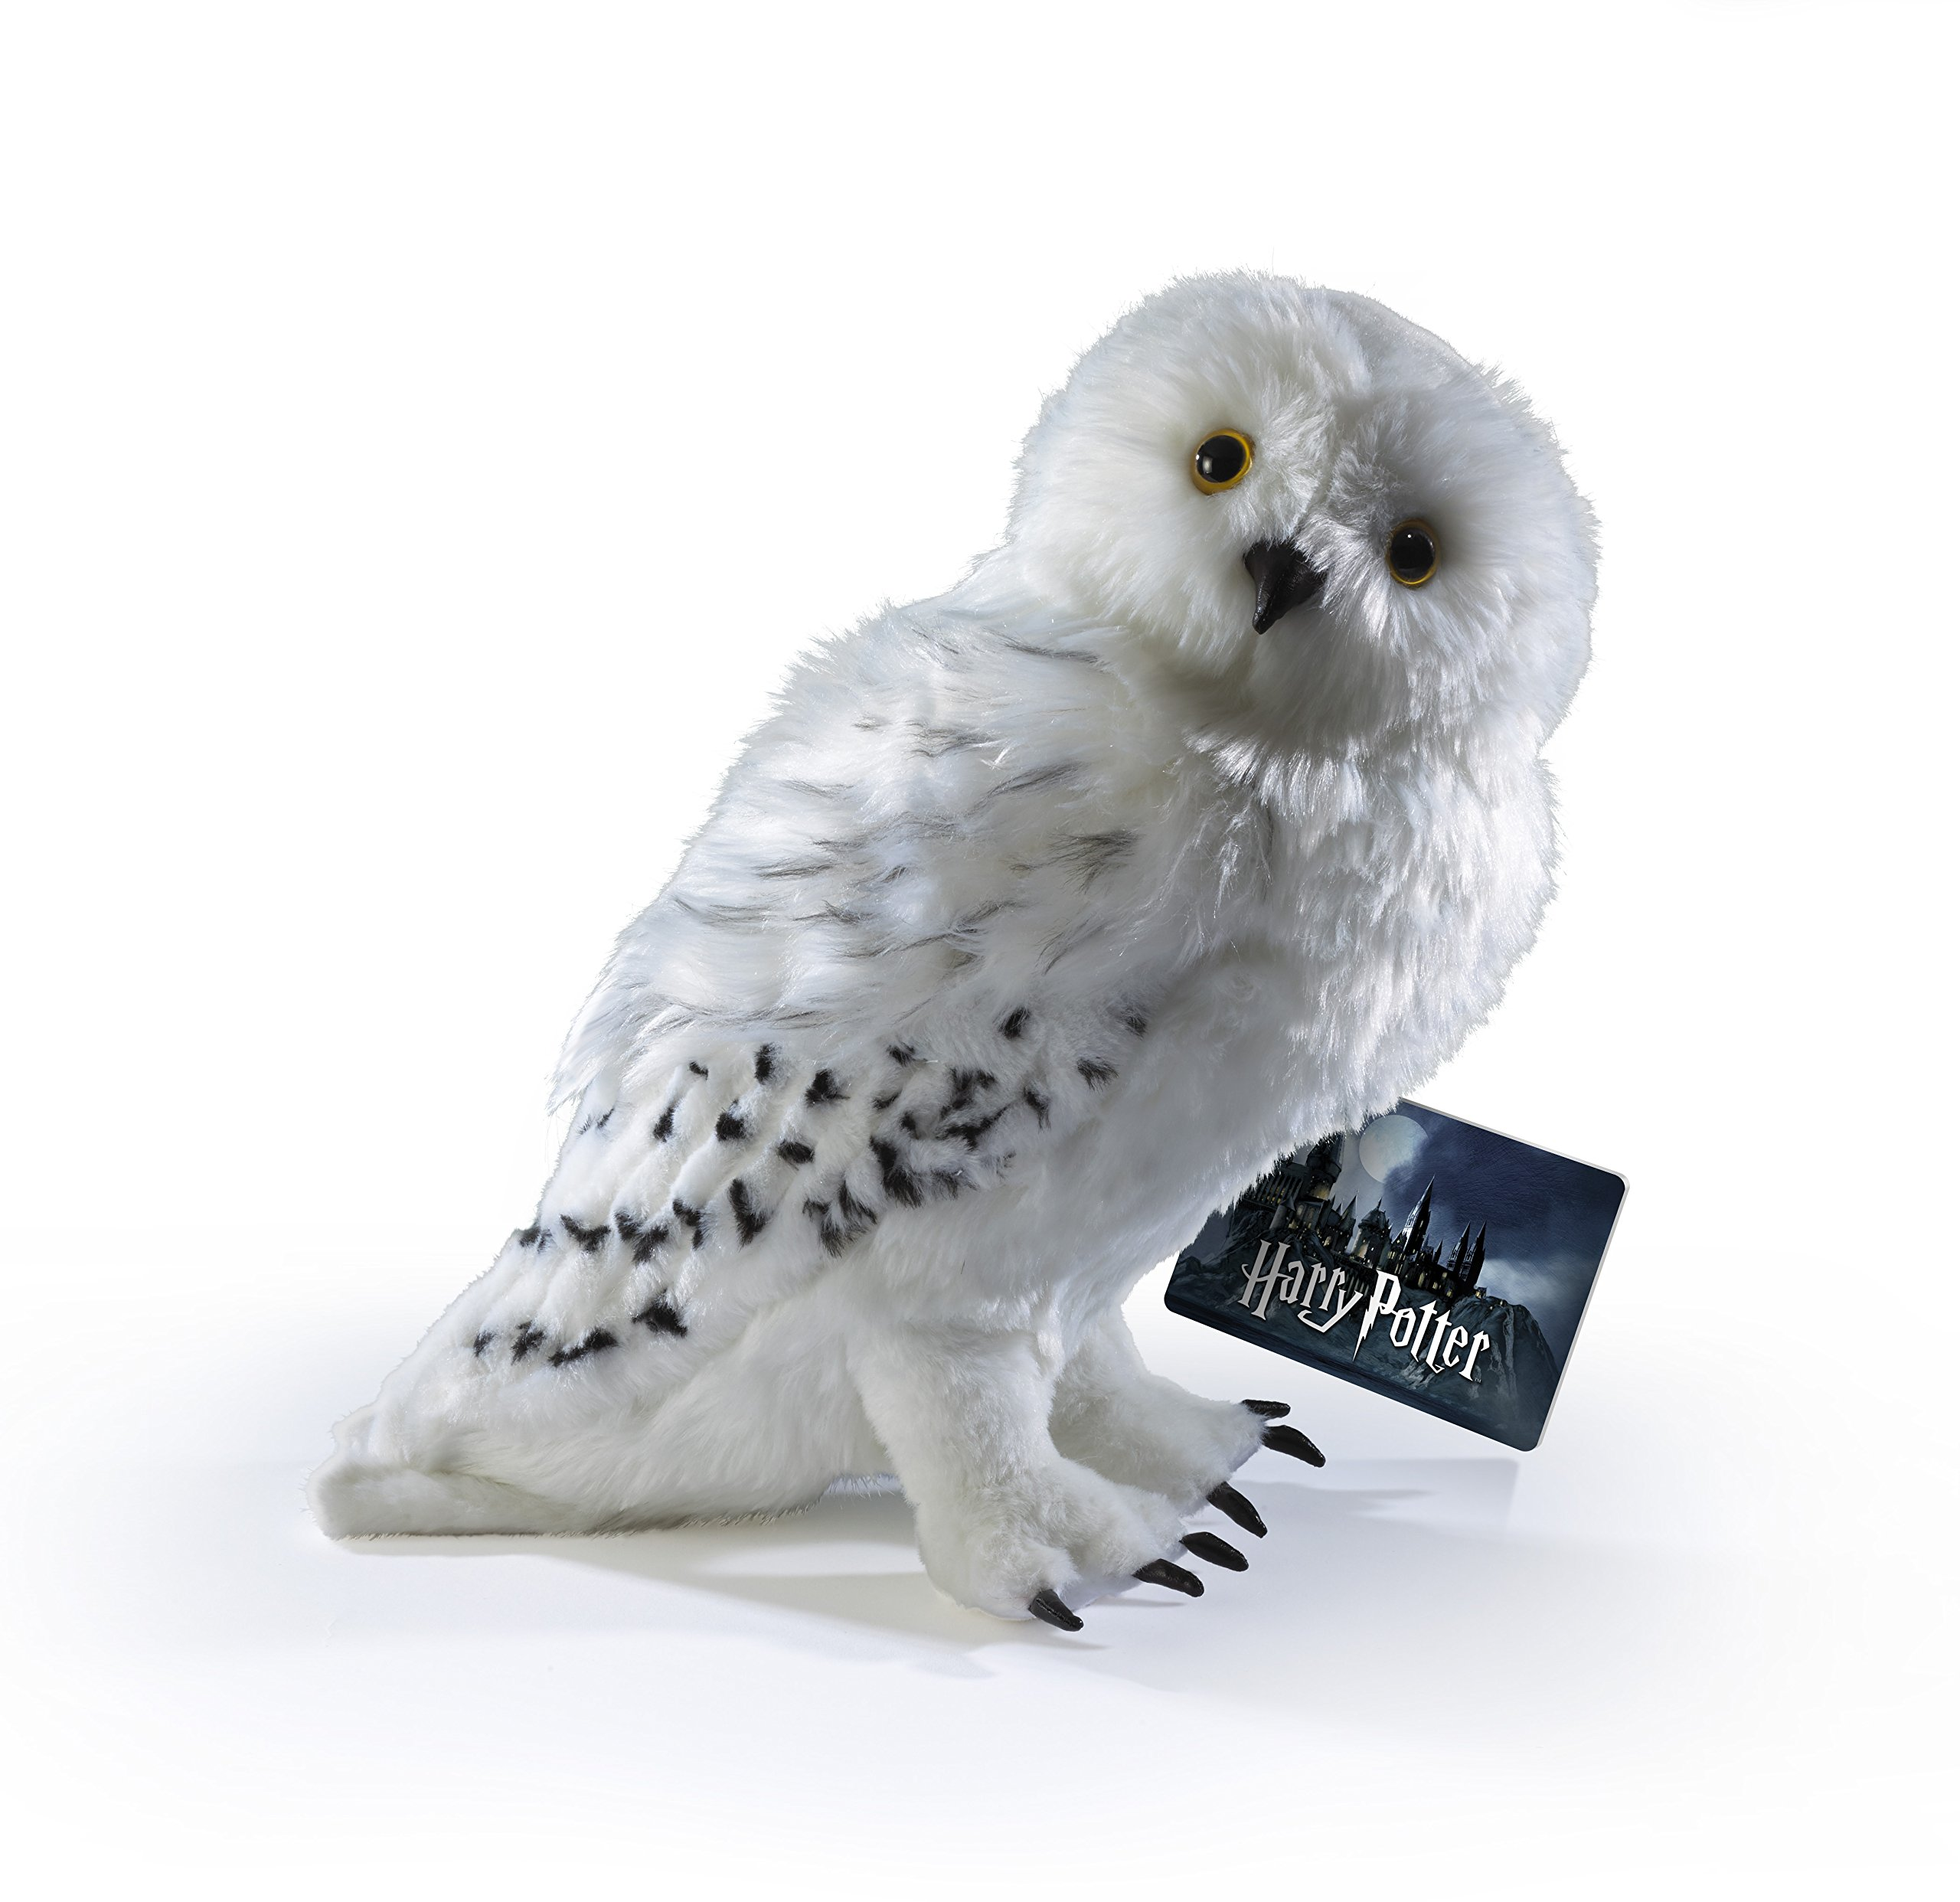 Harry Potter Hedwig Collector Plush by The Noble Collection